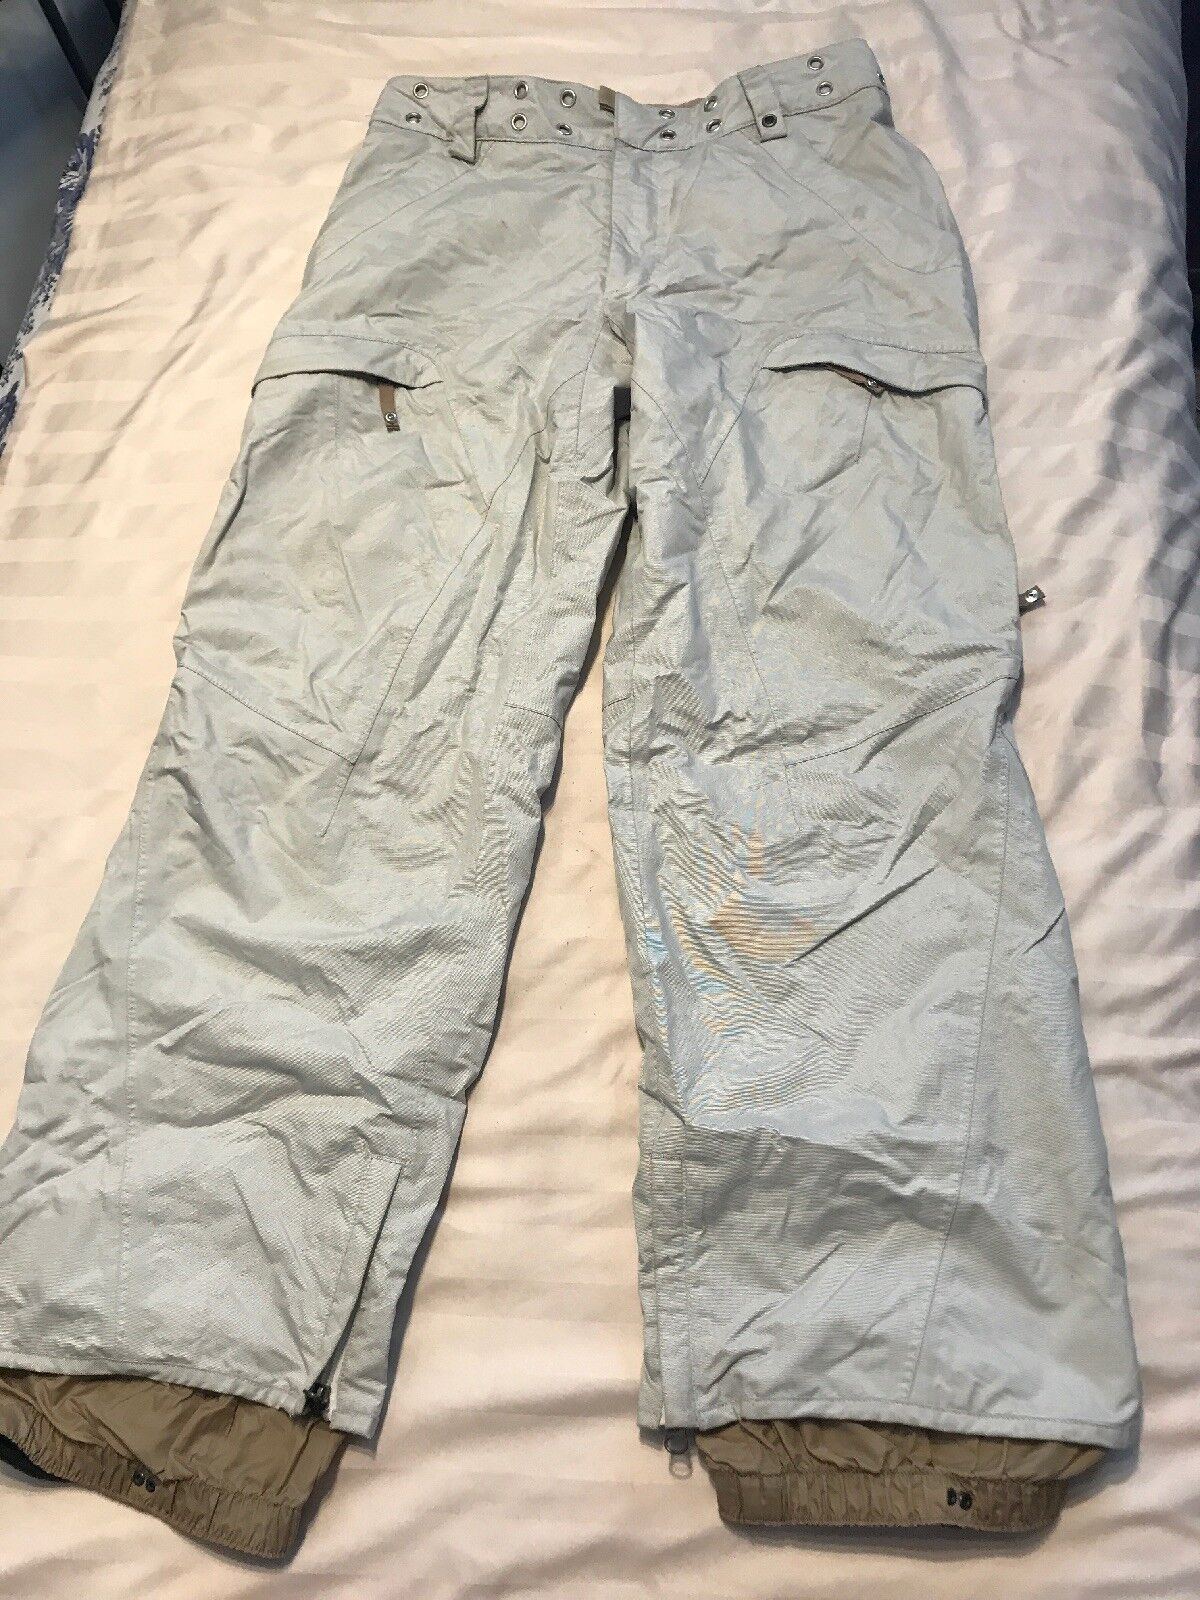 IMPERFECT Burton Snowboard Ski Pants Women's Size  Medium Beige Tan SC8  buy best